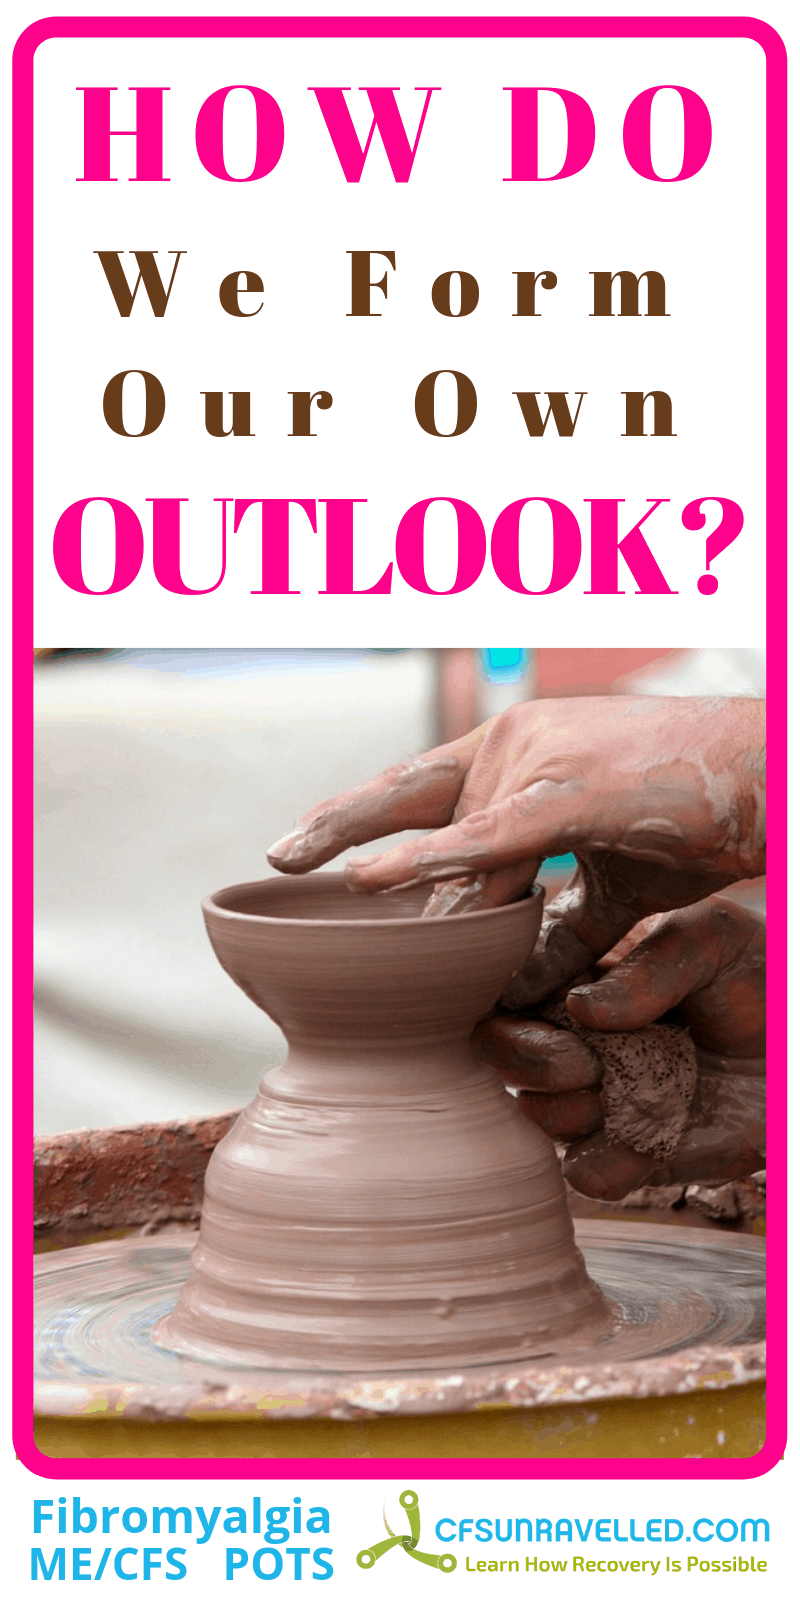 poster about outlook with clay pottery